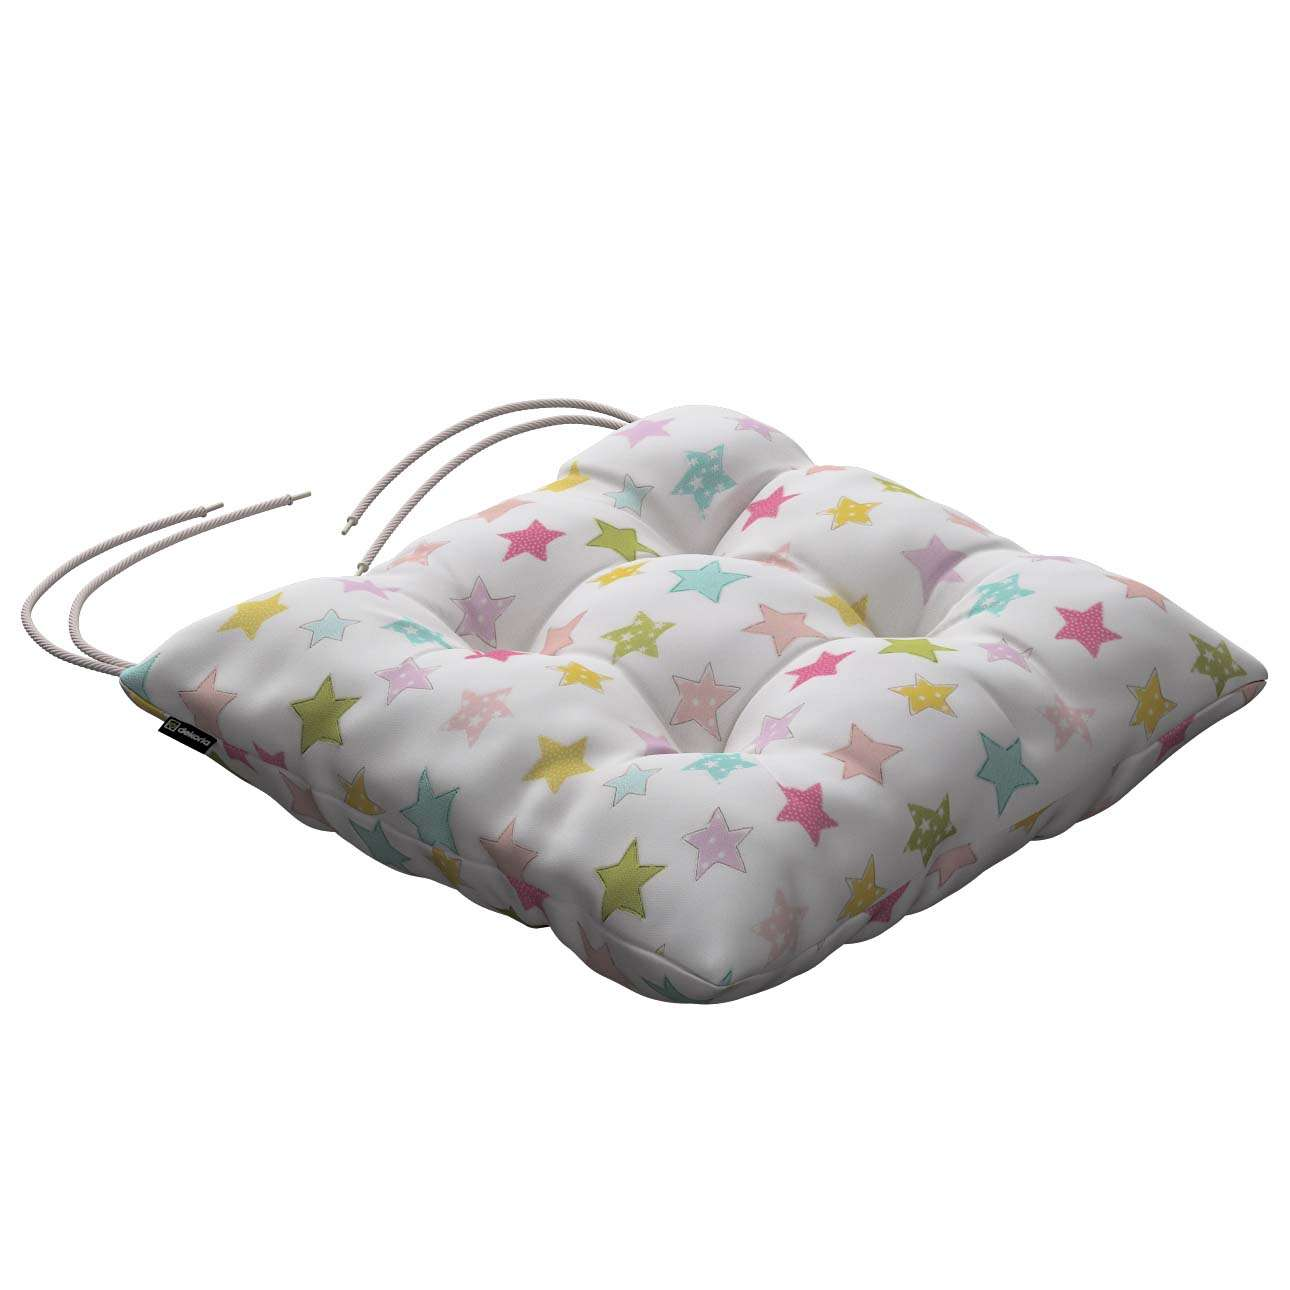 Jack seat pad with ties 40 × 40 × 8 cm (16 × 16 × 3 inch) in collection Little World, fabric: 141-52